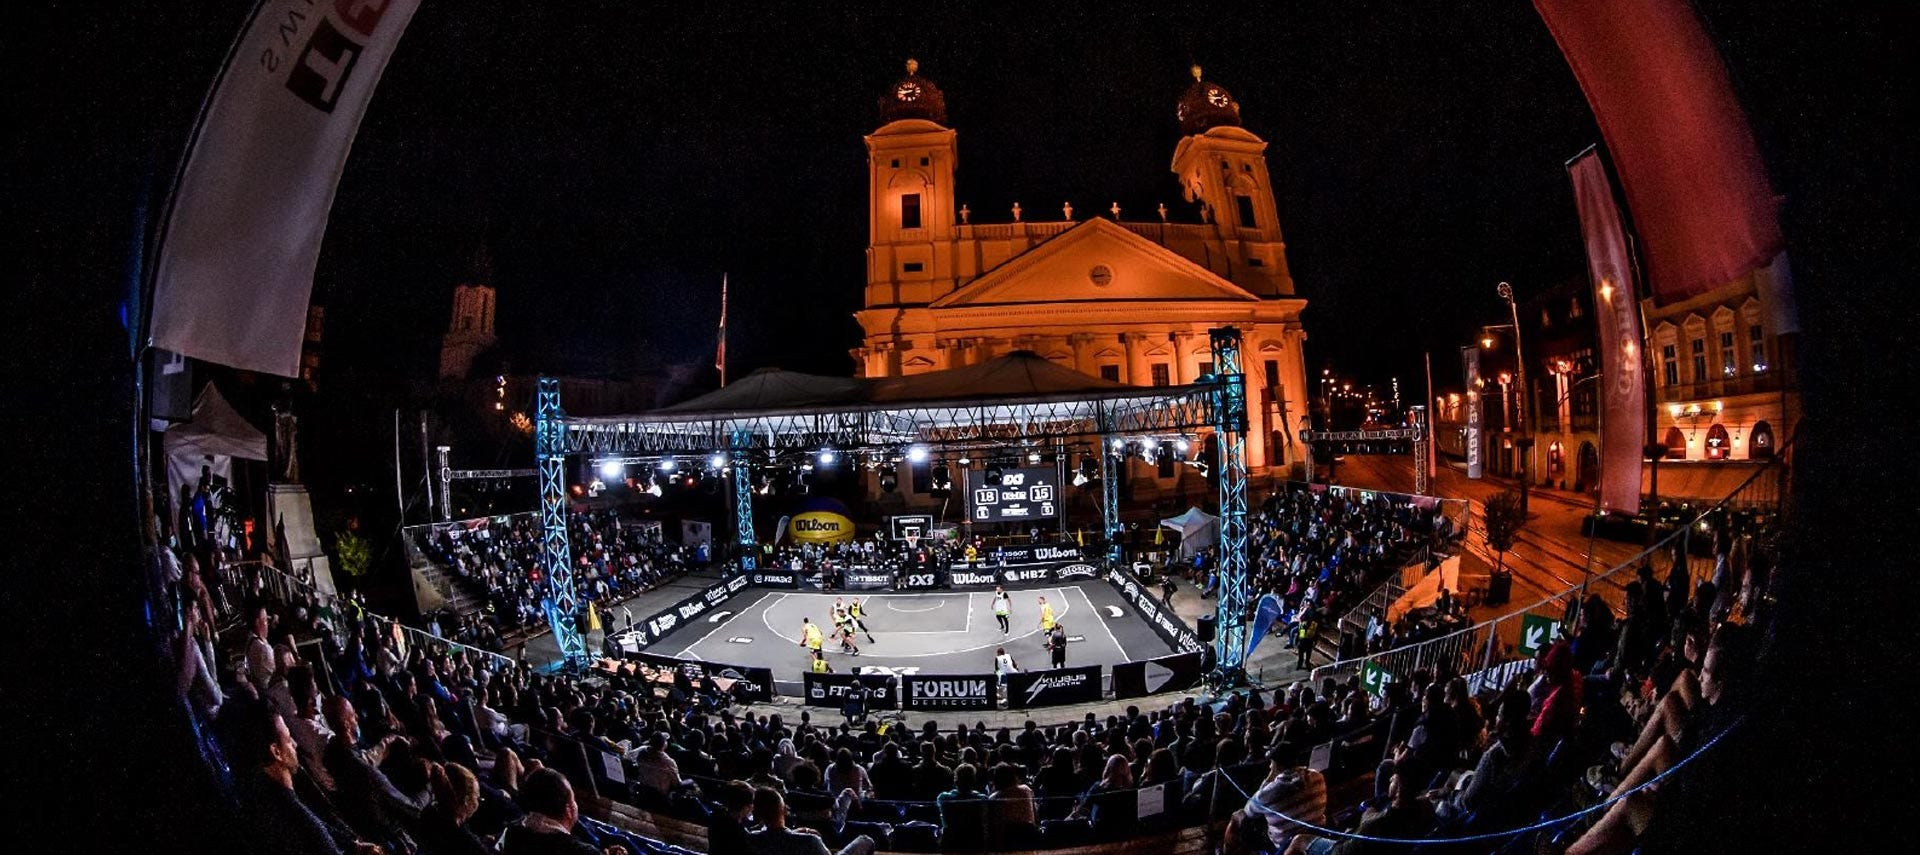 The FIBA 3x3 court lit up at night